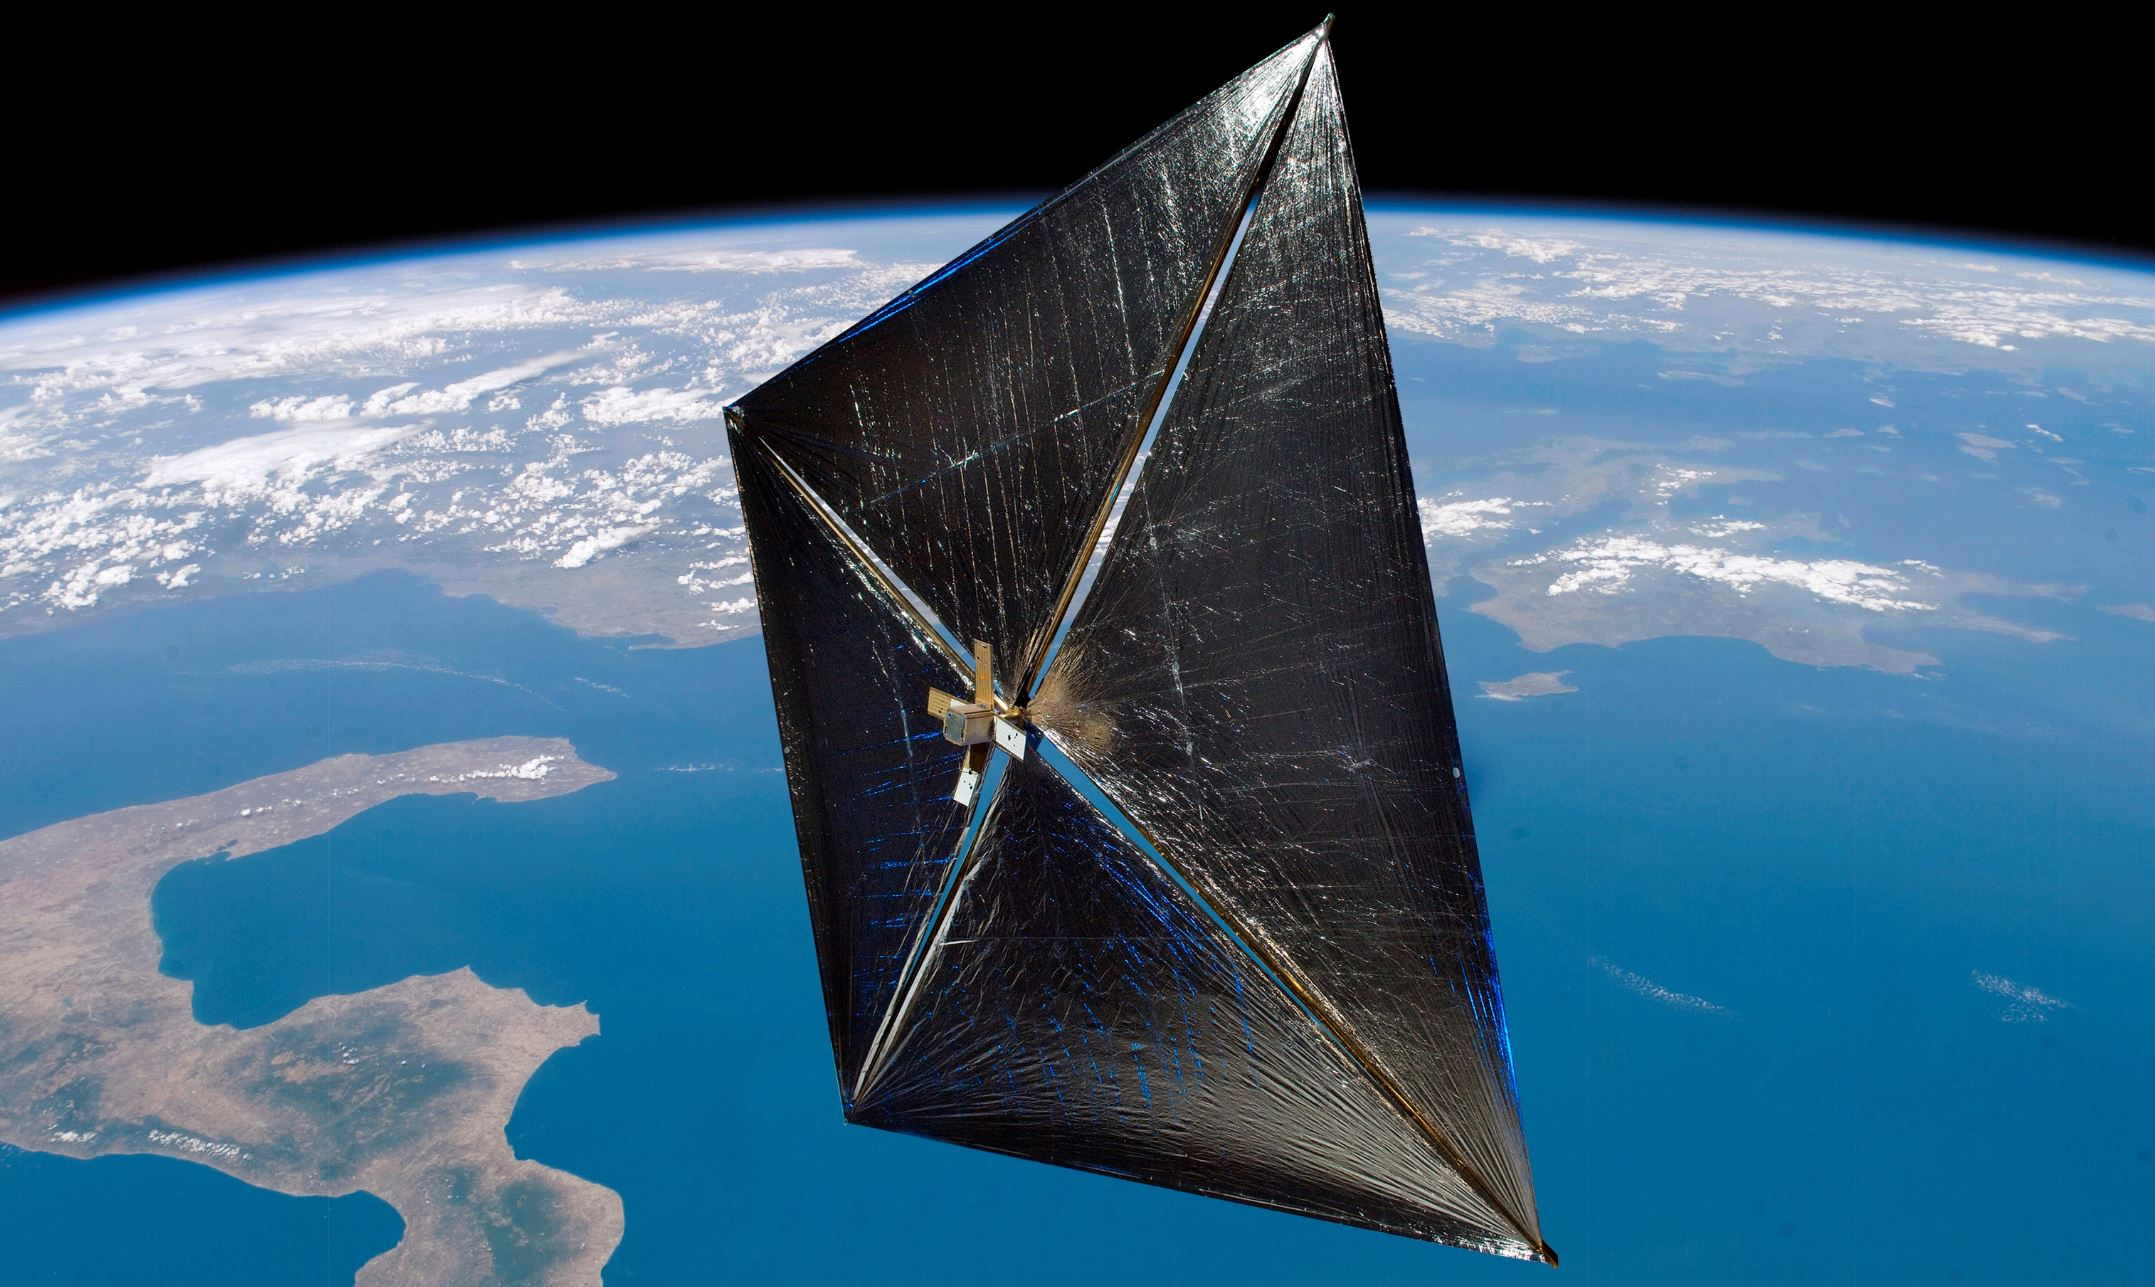 Artist's impression of the NanoSail D satellite in orbit with solar sail - Image Credit:  NASA via Wikimedia Commons